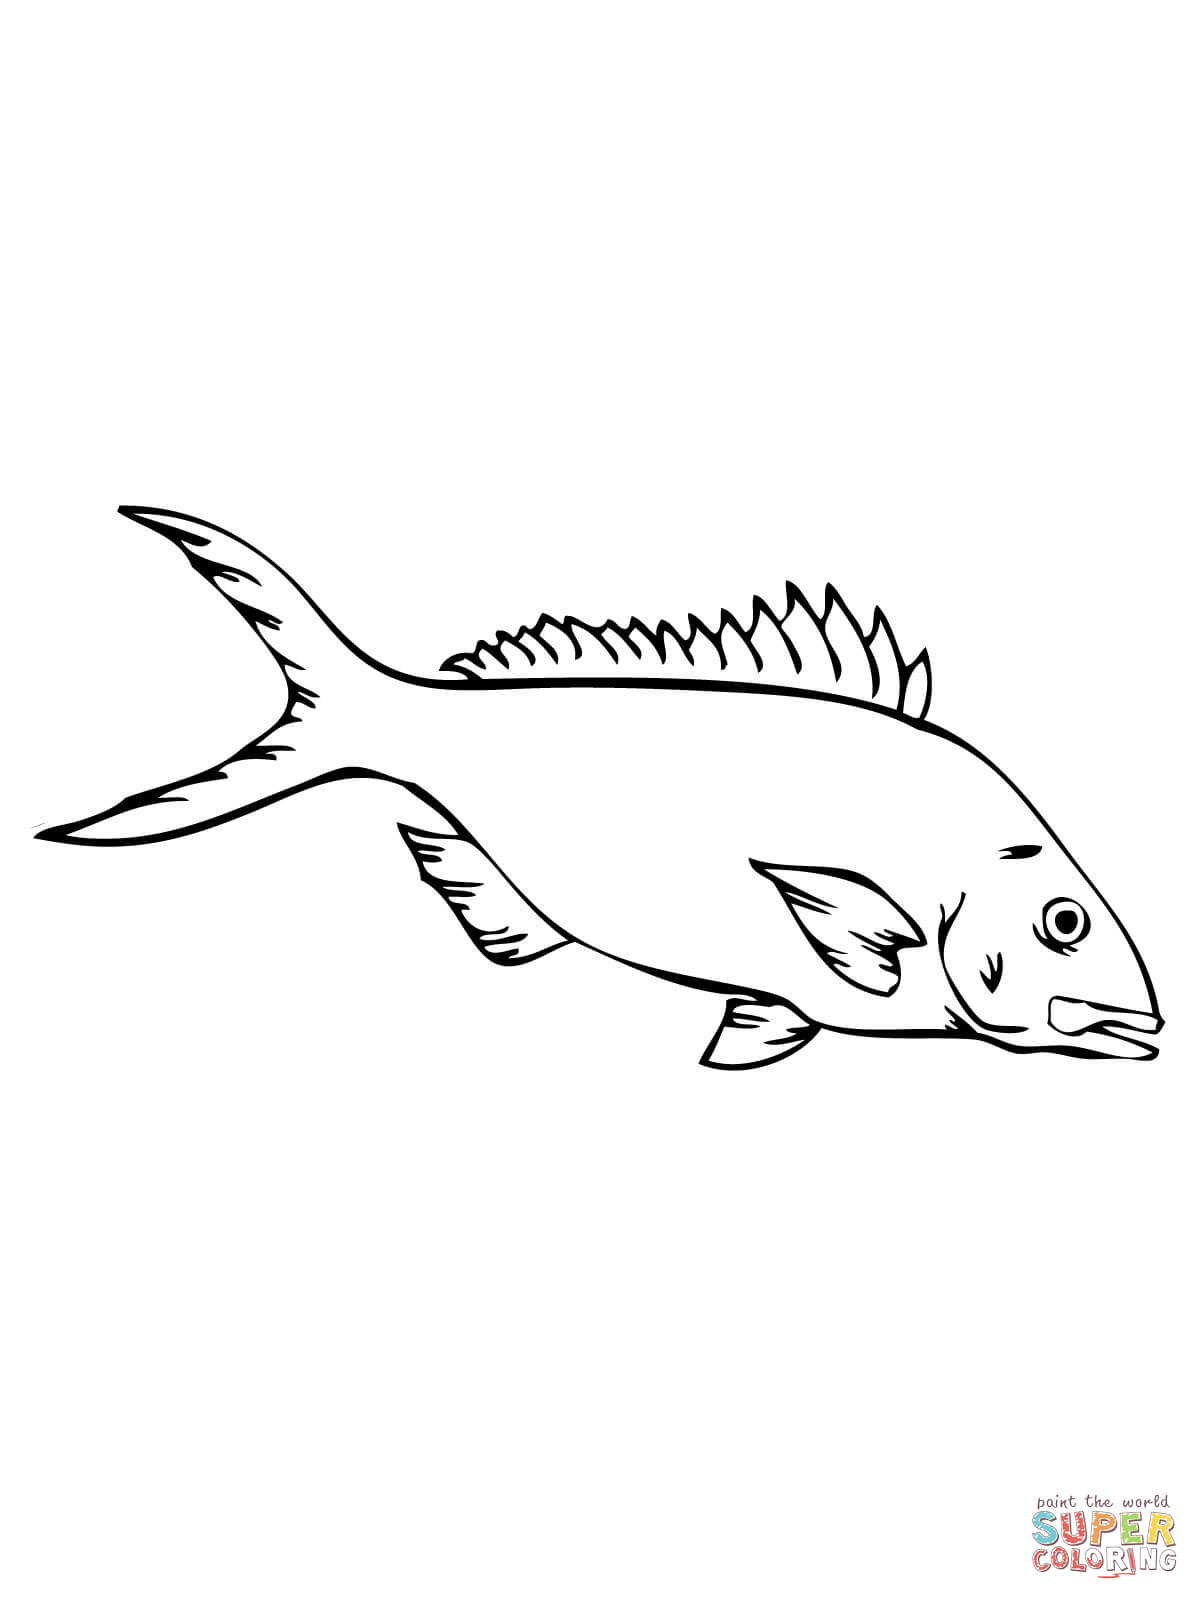 Yellowtail Barracuda Shoal Coloring Page Free Printable Coloring